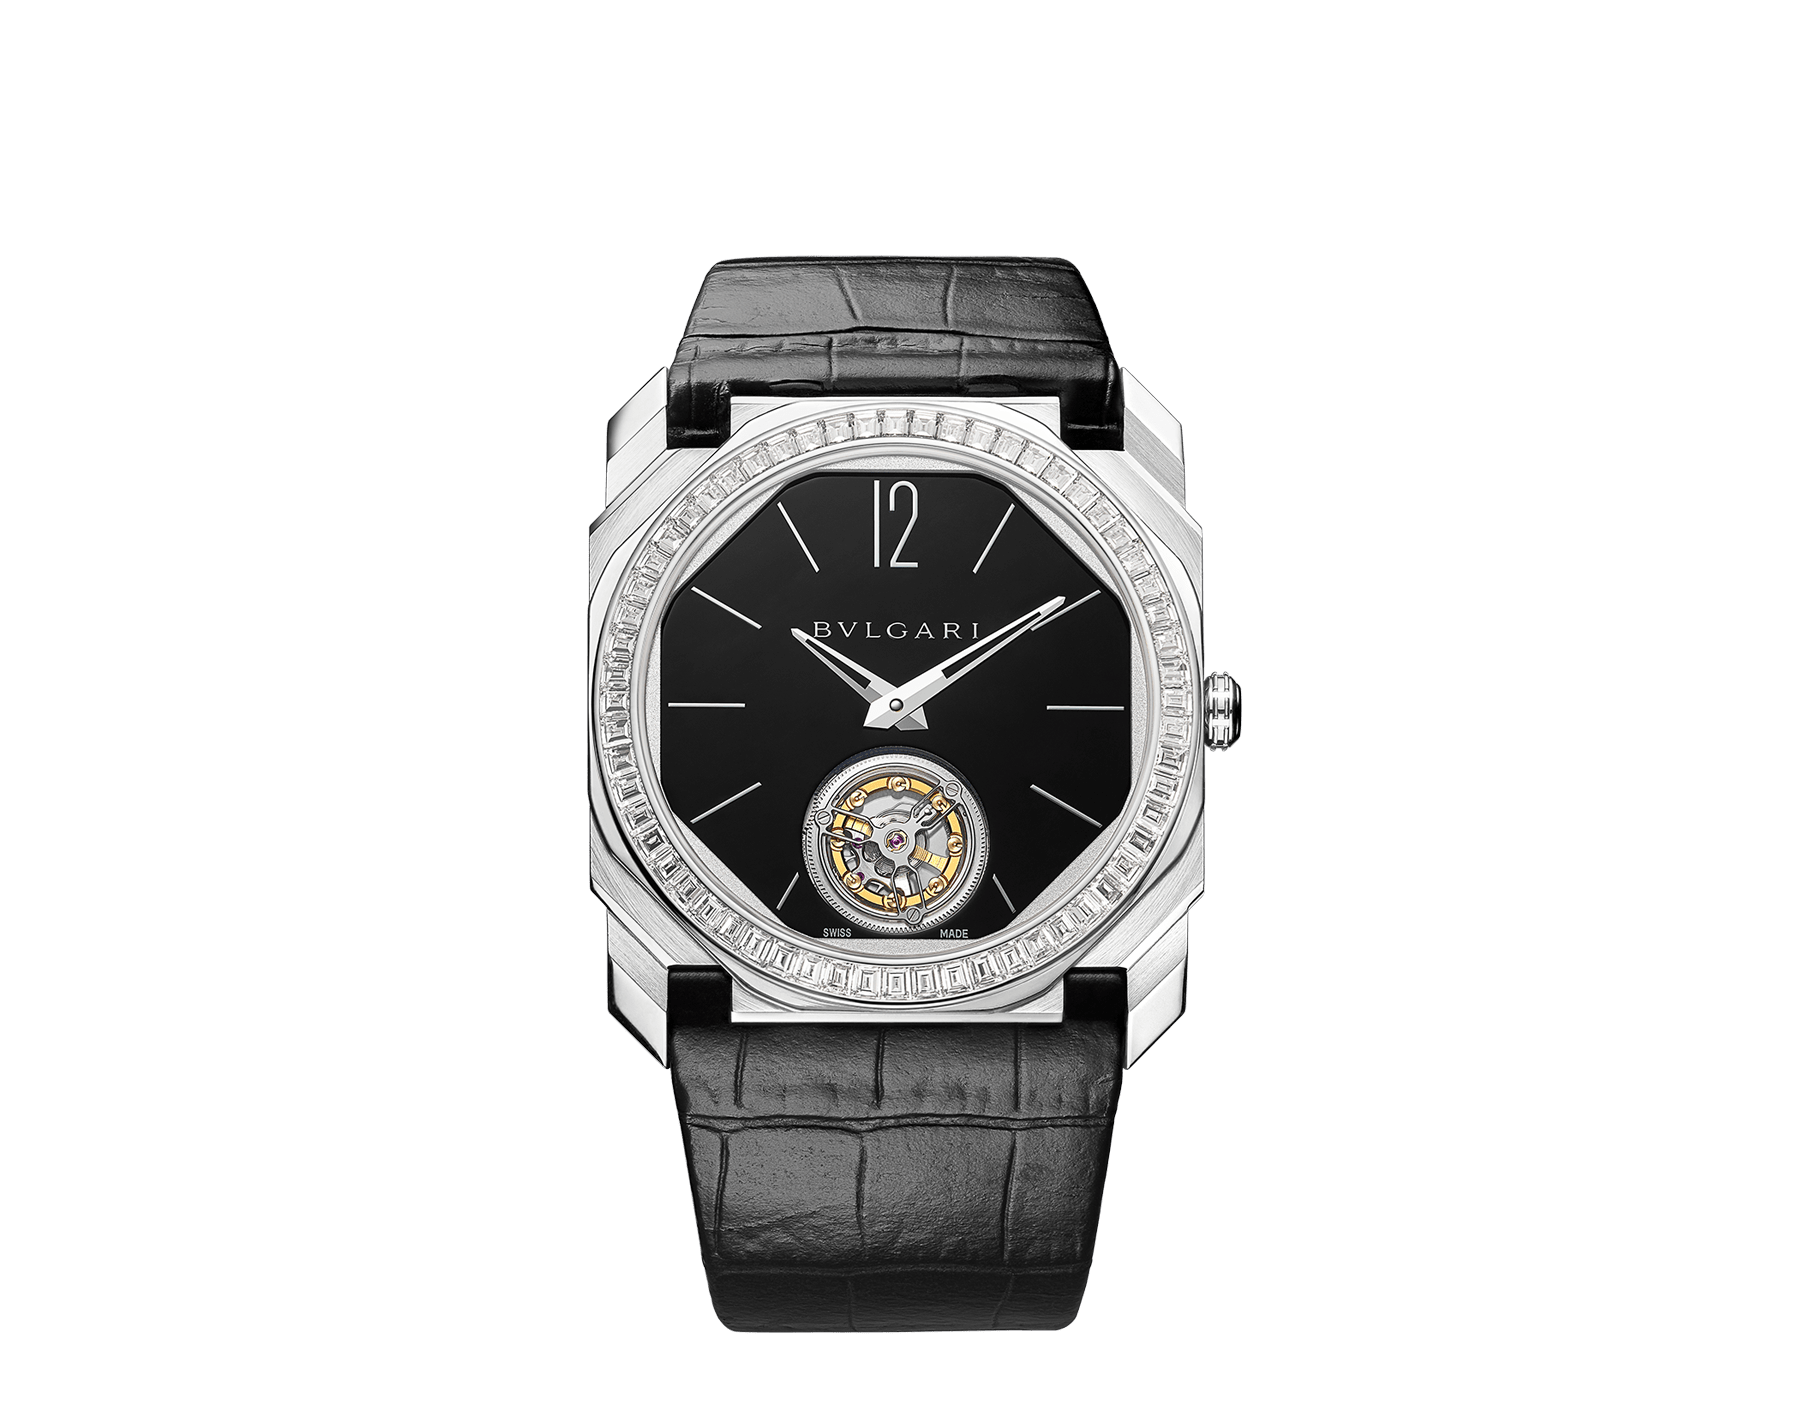 Octo Finissimo Tourbillon Limited Edition watch with extra thin mechanical manufacture movement and manual winding, platinum case, bezel set with baguette-cut diamonds, black lacquered dial with tourbillon see-through opening and black alligator bracelet. 102401 image 1